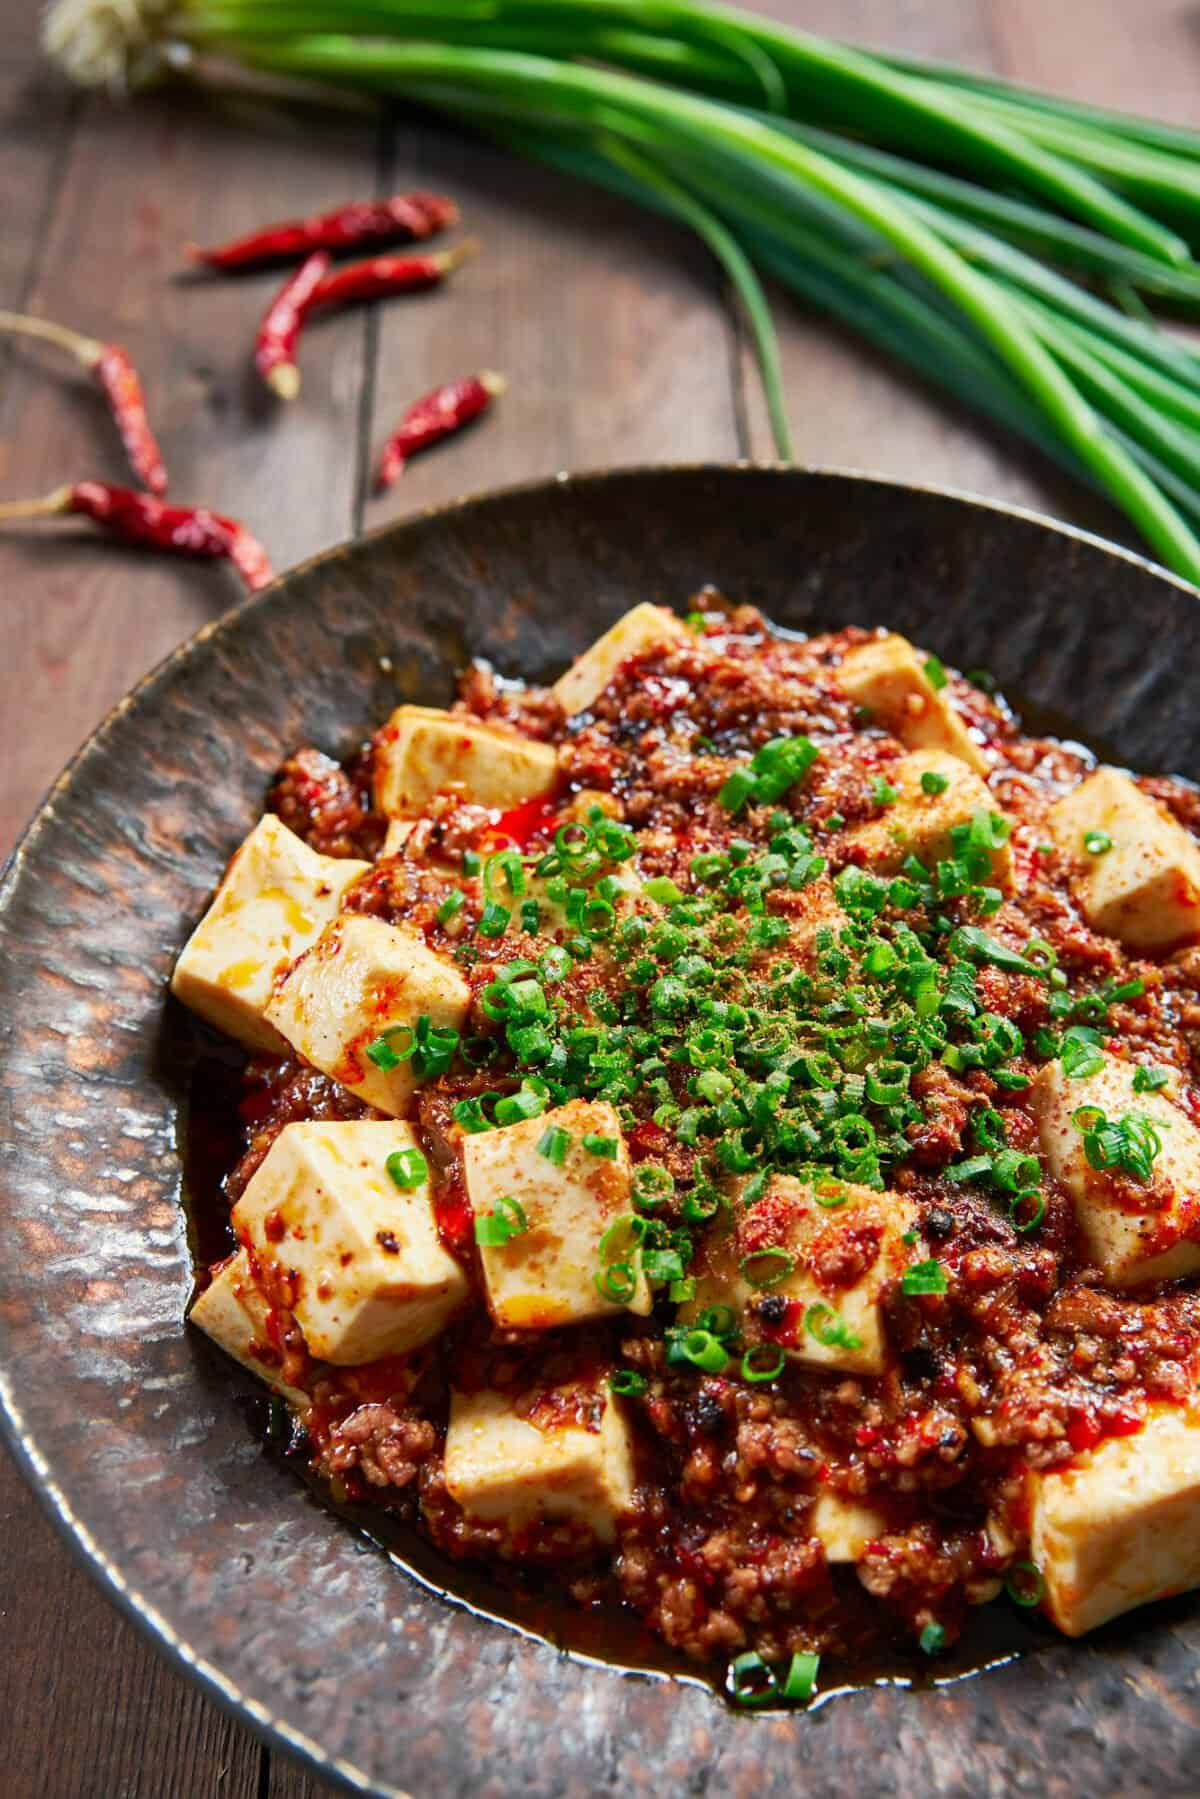 With custardy cubes of tofu draped in a tongue tingling spicy sauce, this Sichuan-style Mapo Tofu is the best tofu dish ever!